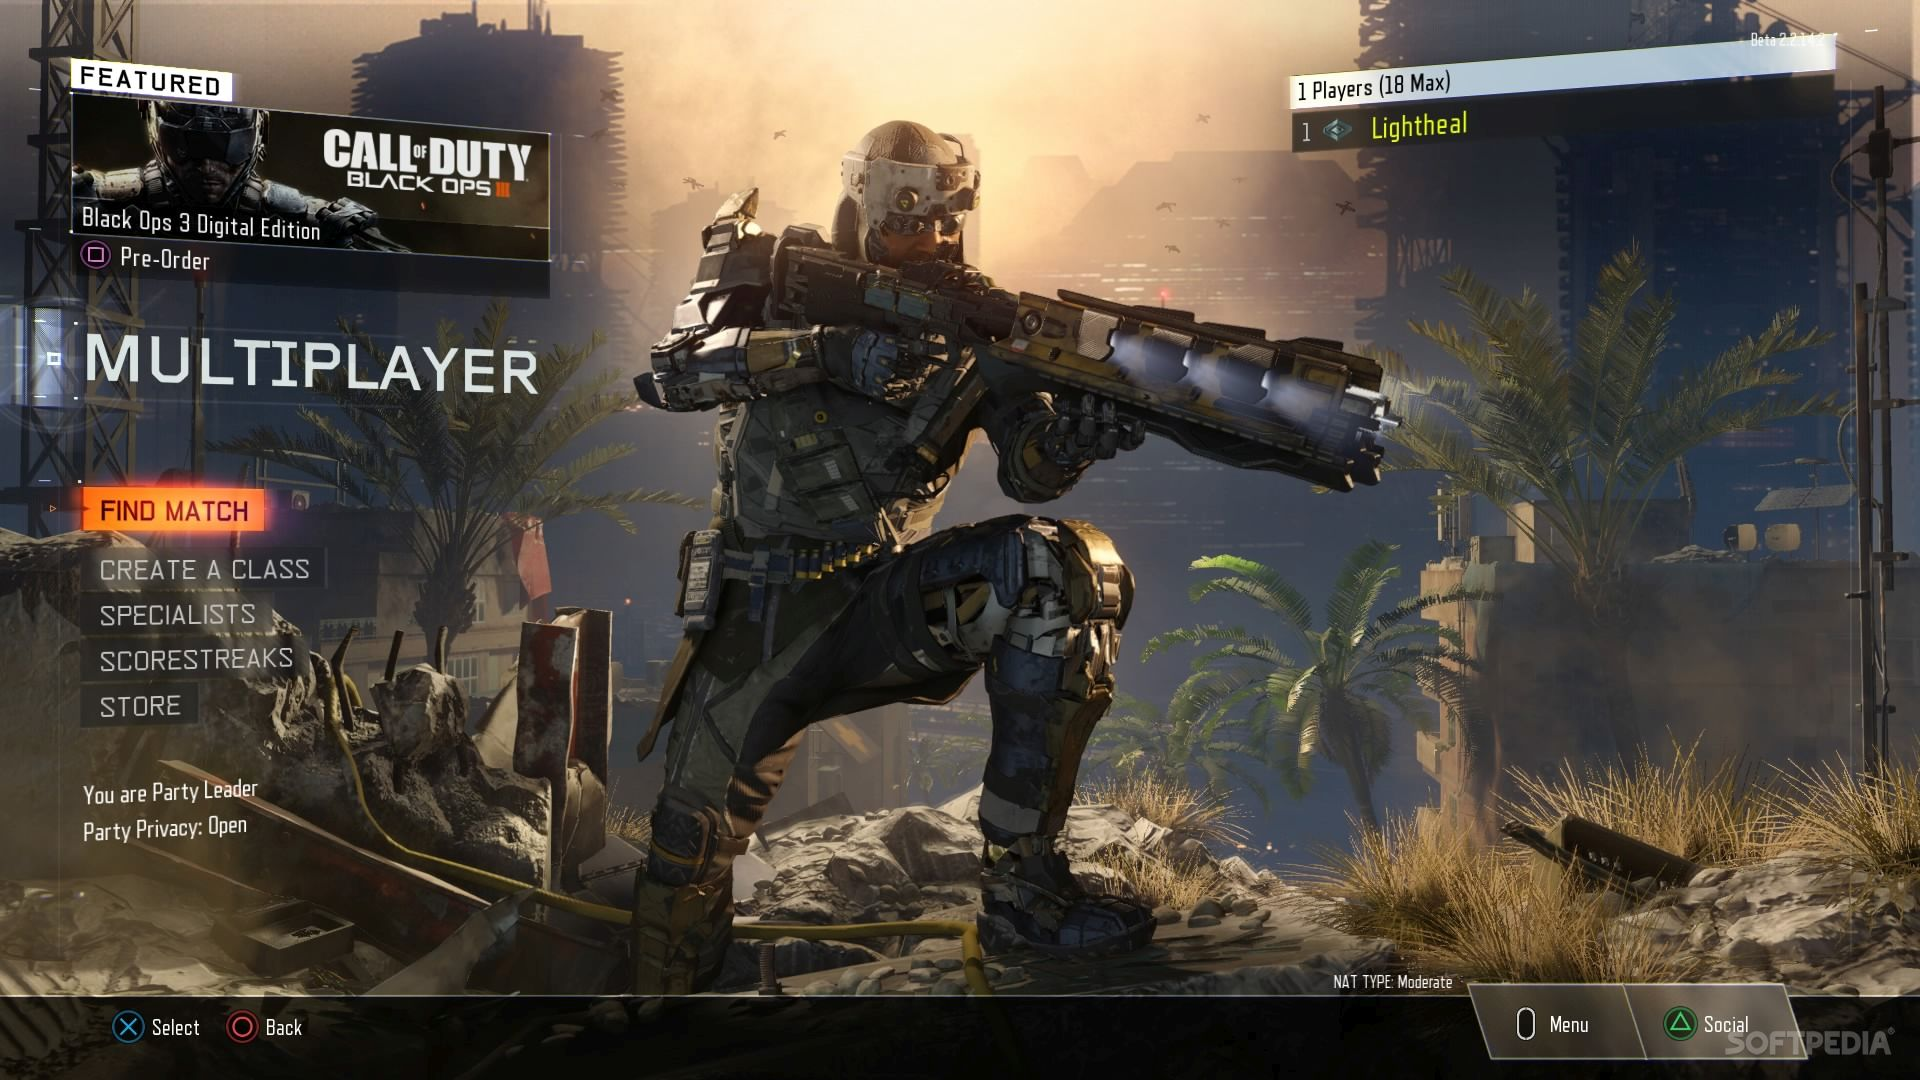 Call Of Duty Black Ops 3 Ps4 Multiplayer Beta Now Available To All Fans